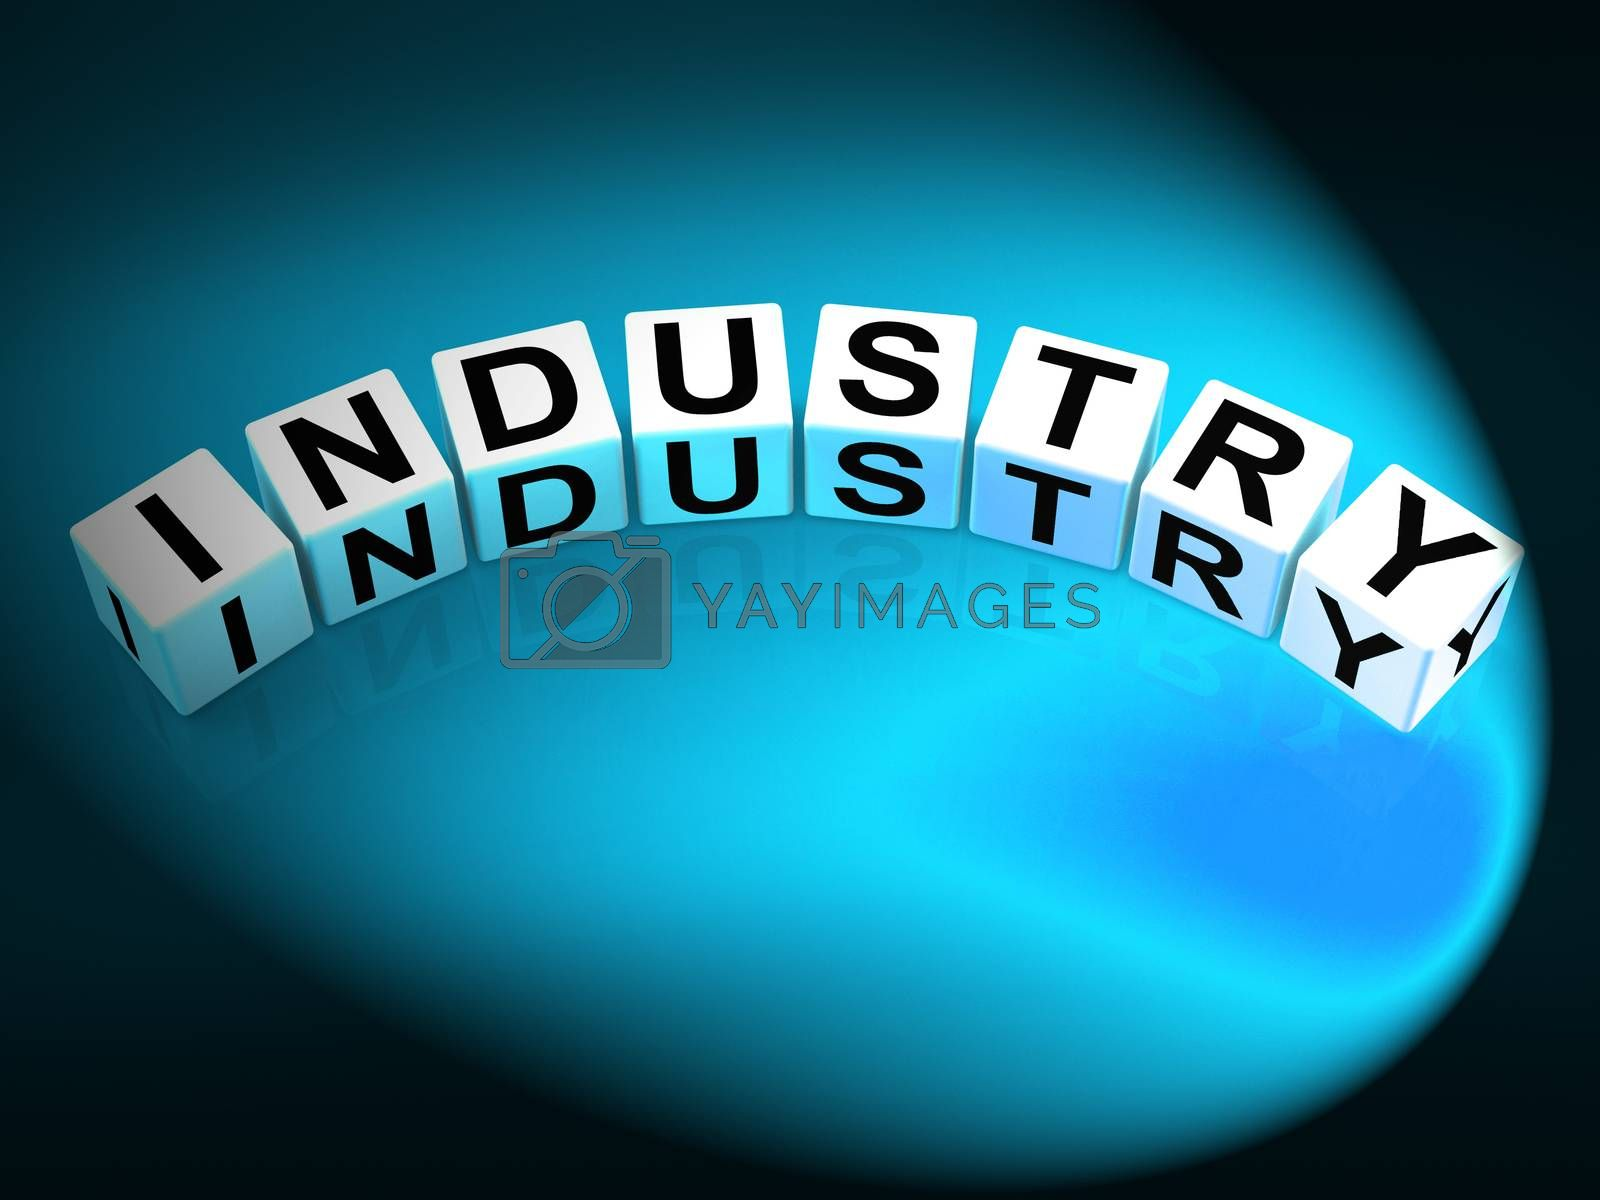 Industry Dice Mean Industrial Production and Workplace Manufactu by stuartmiles